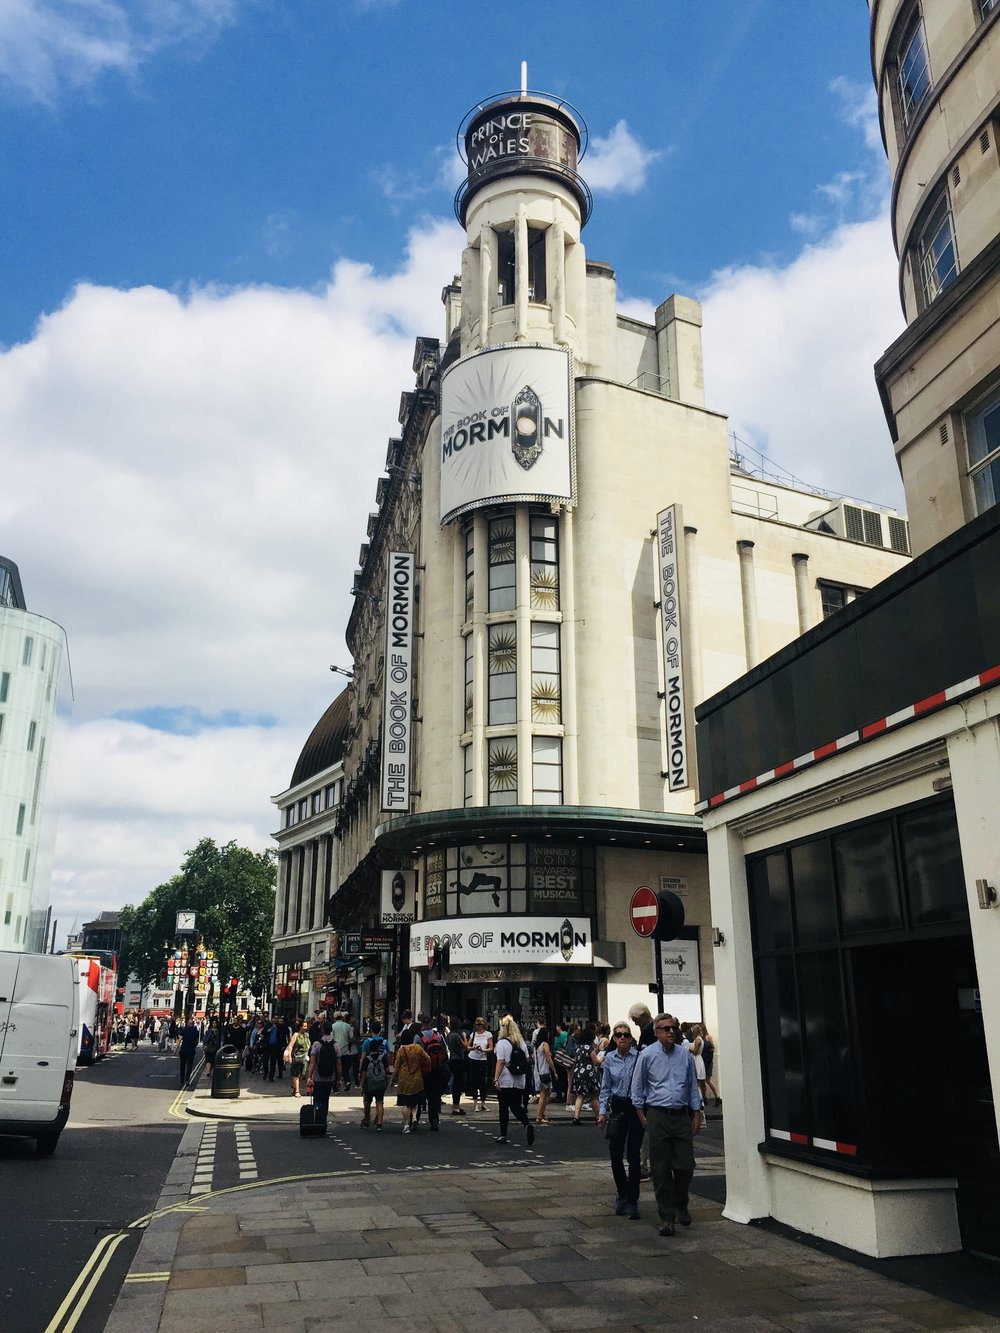 travel guide to london: book of mormon